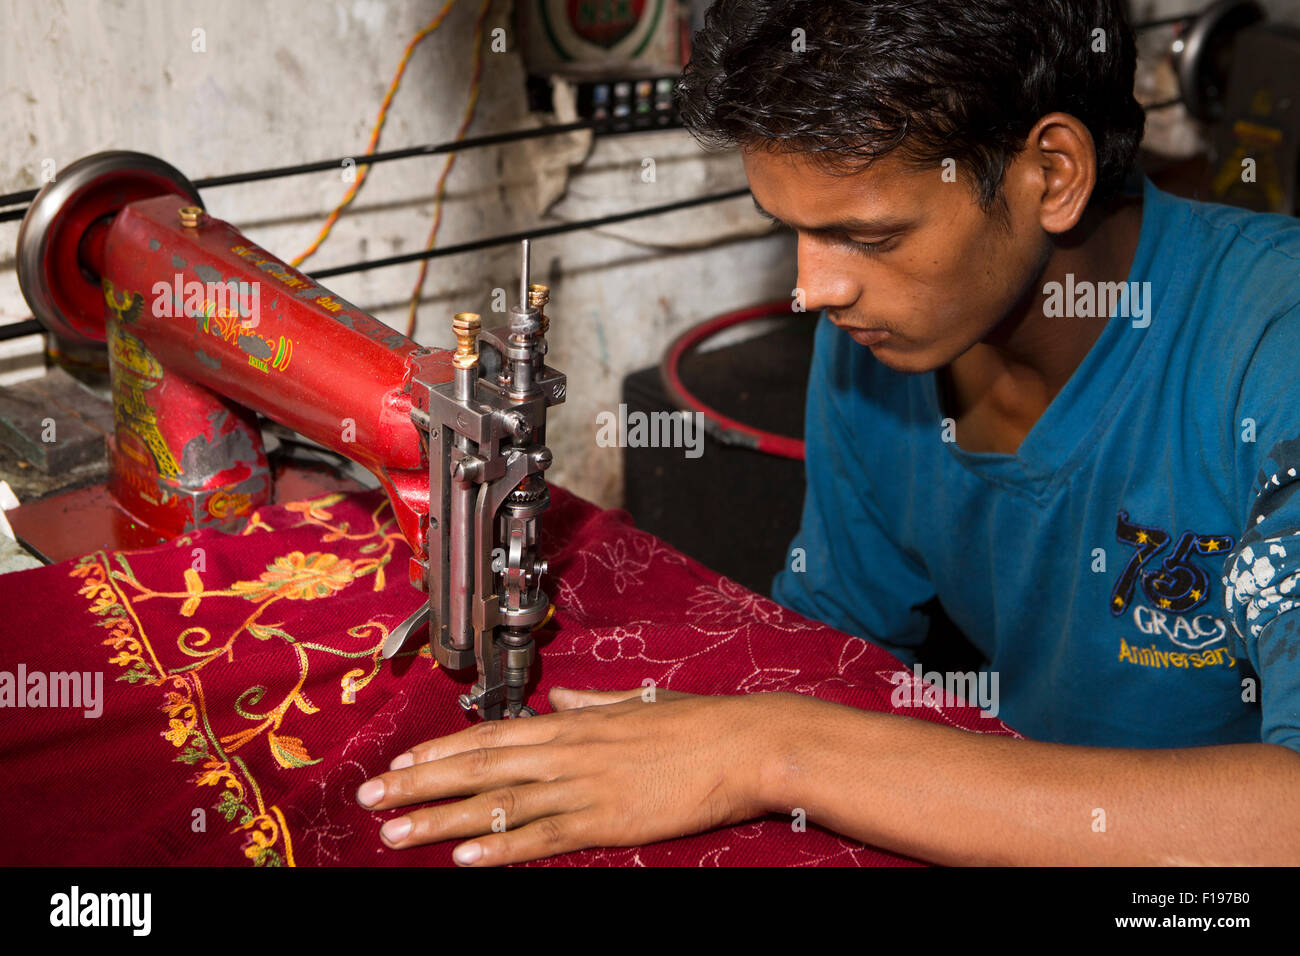 India, Jammu & Kashmir, Srinagar, Old City, crafts, young worker machine embroidering pashmina decoration - Stock Image